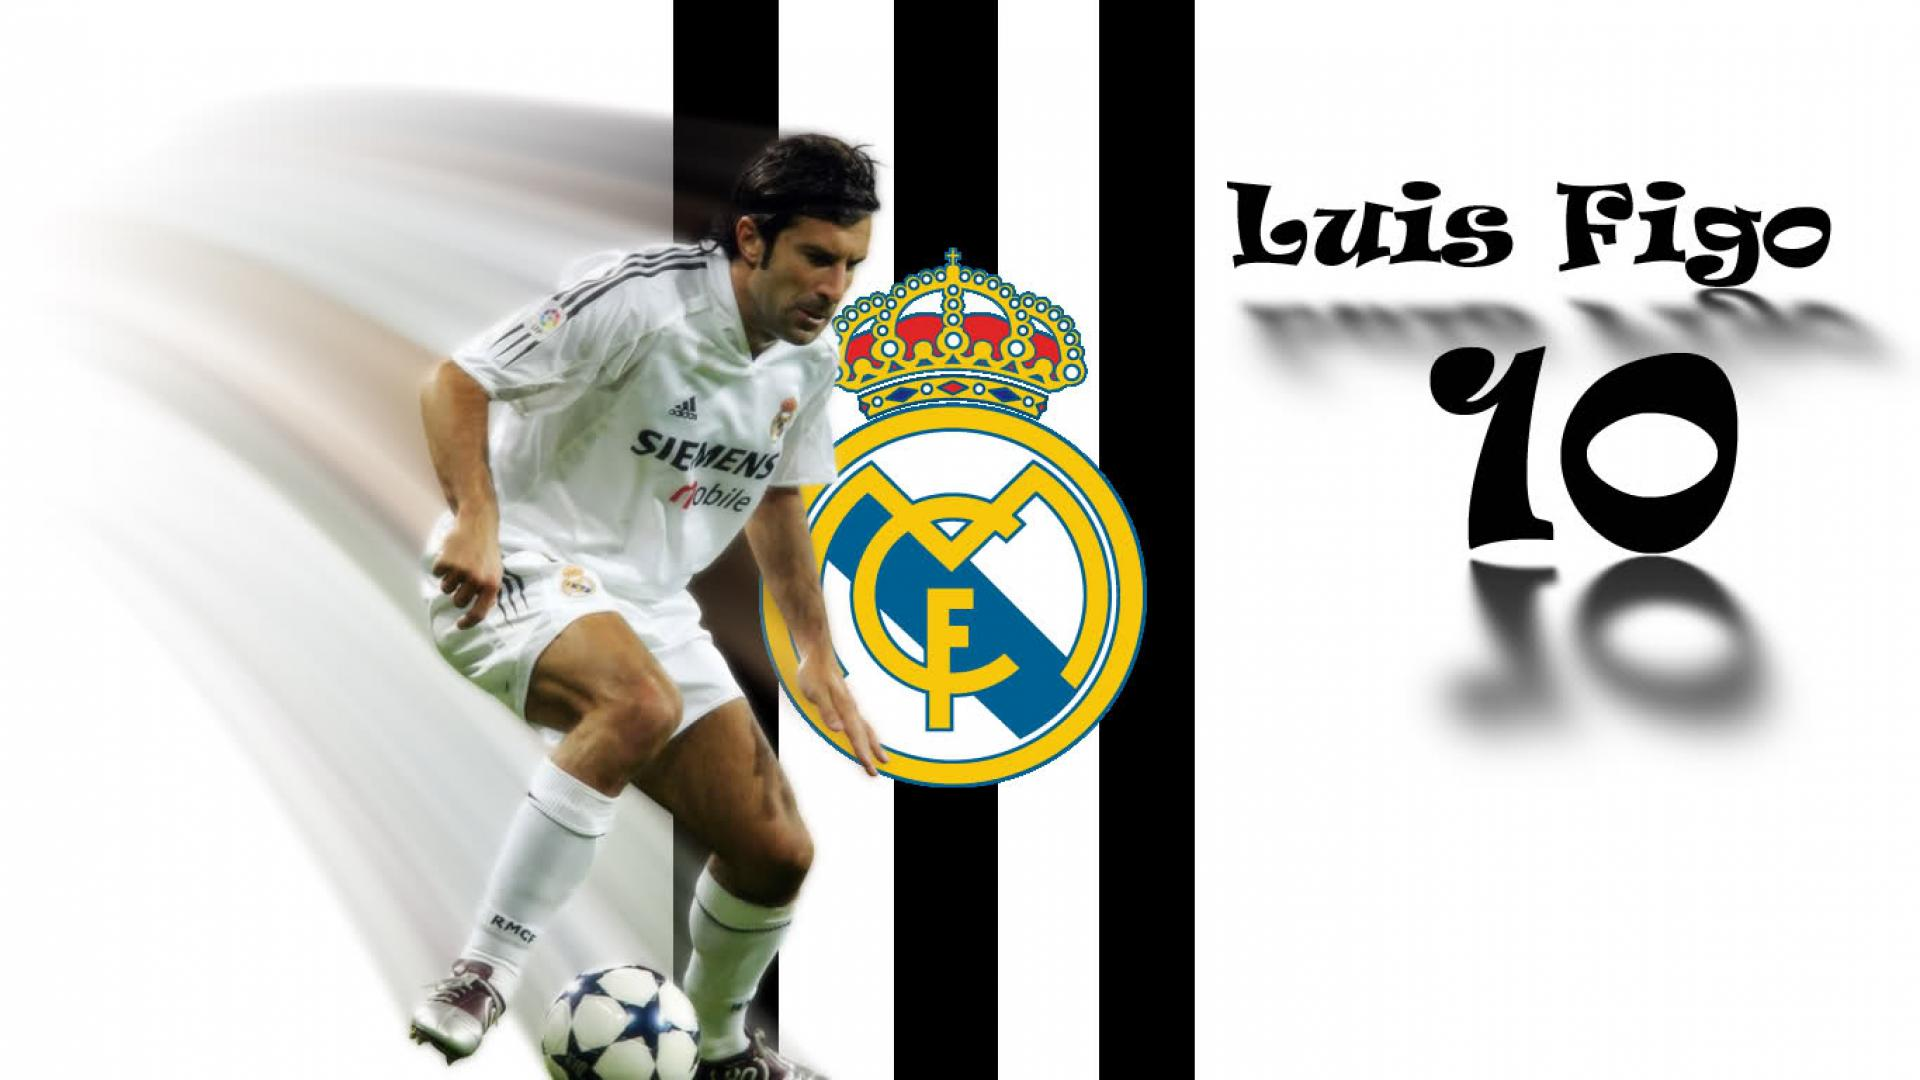 Luis Figo Wallpapers 1366x768 px 96ZDB62 WallpapersExpertcom 1920x1080